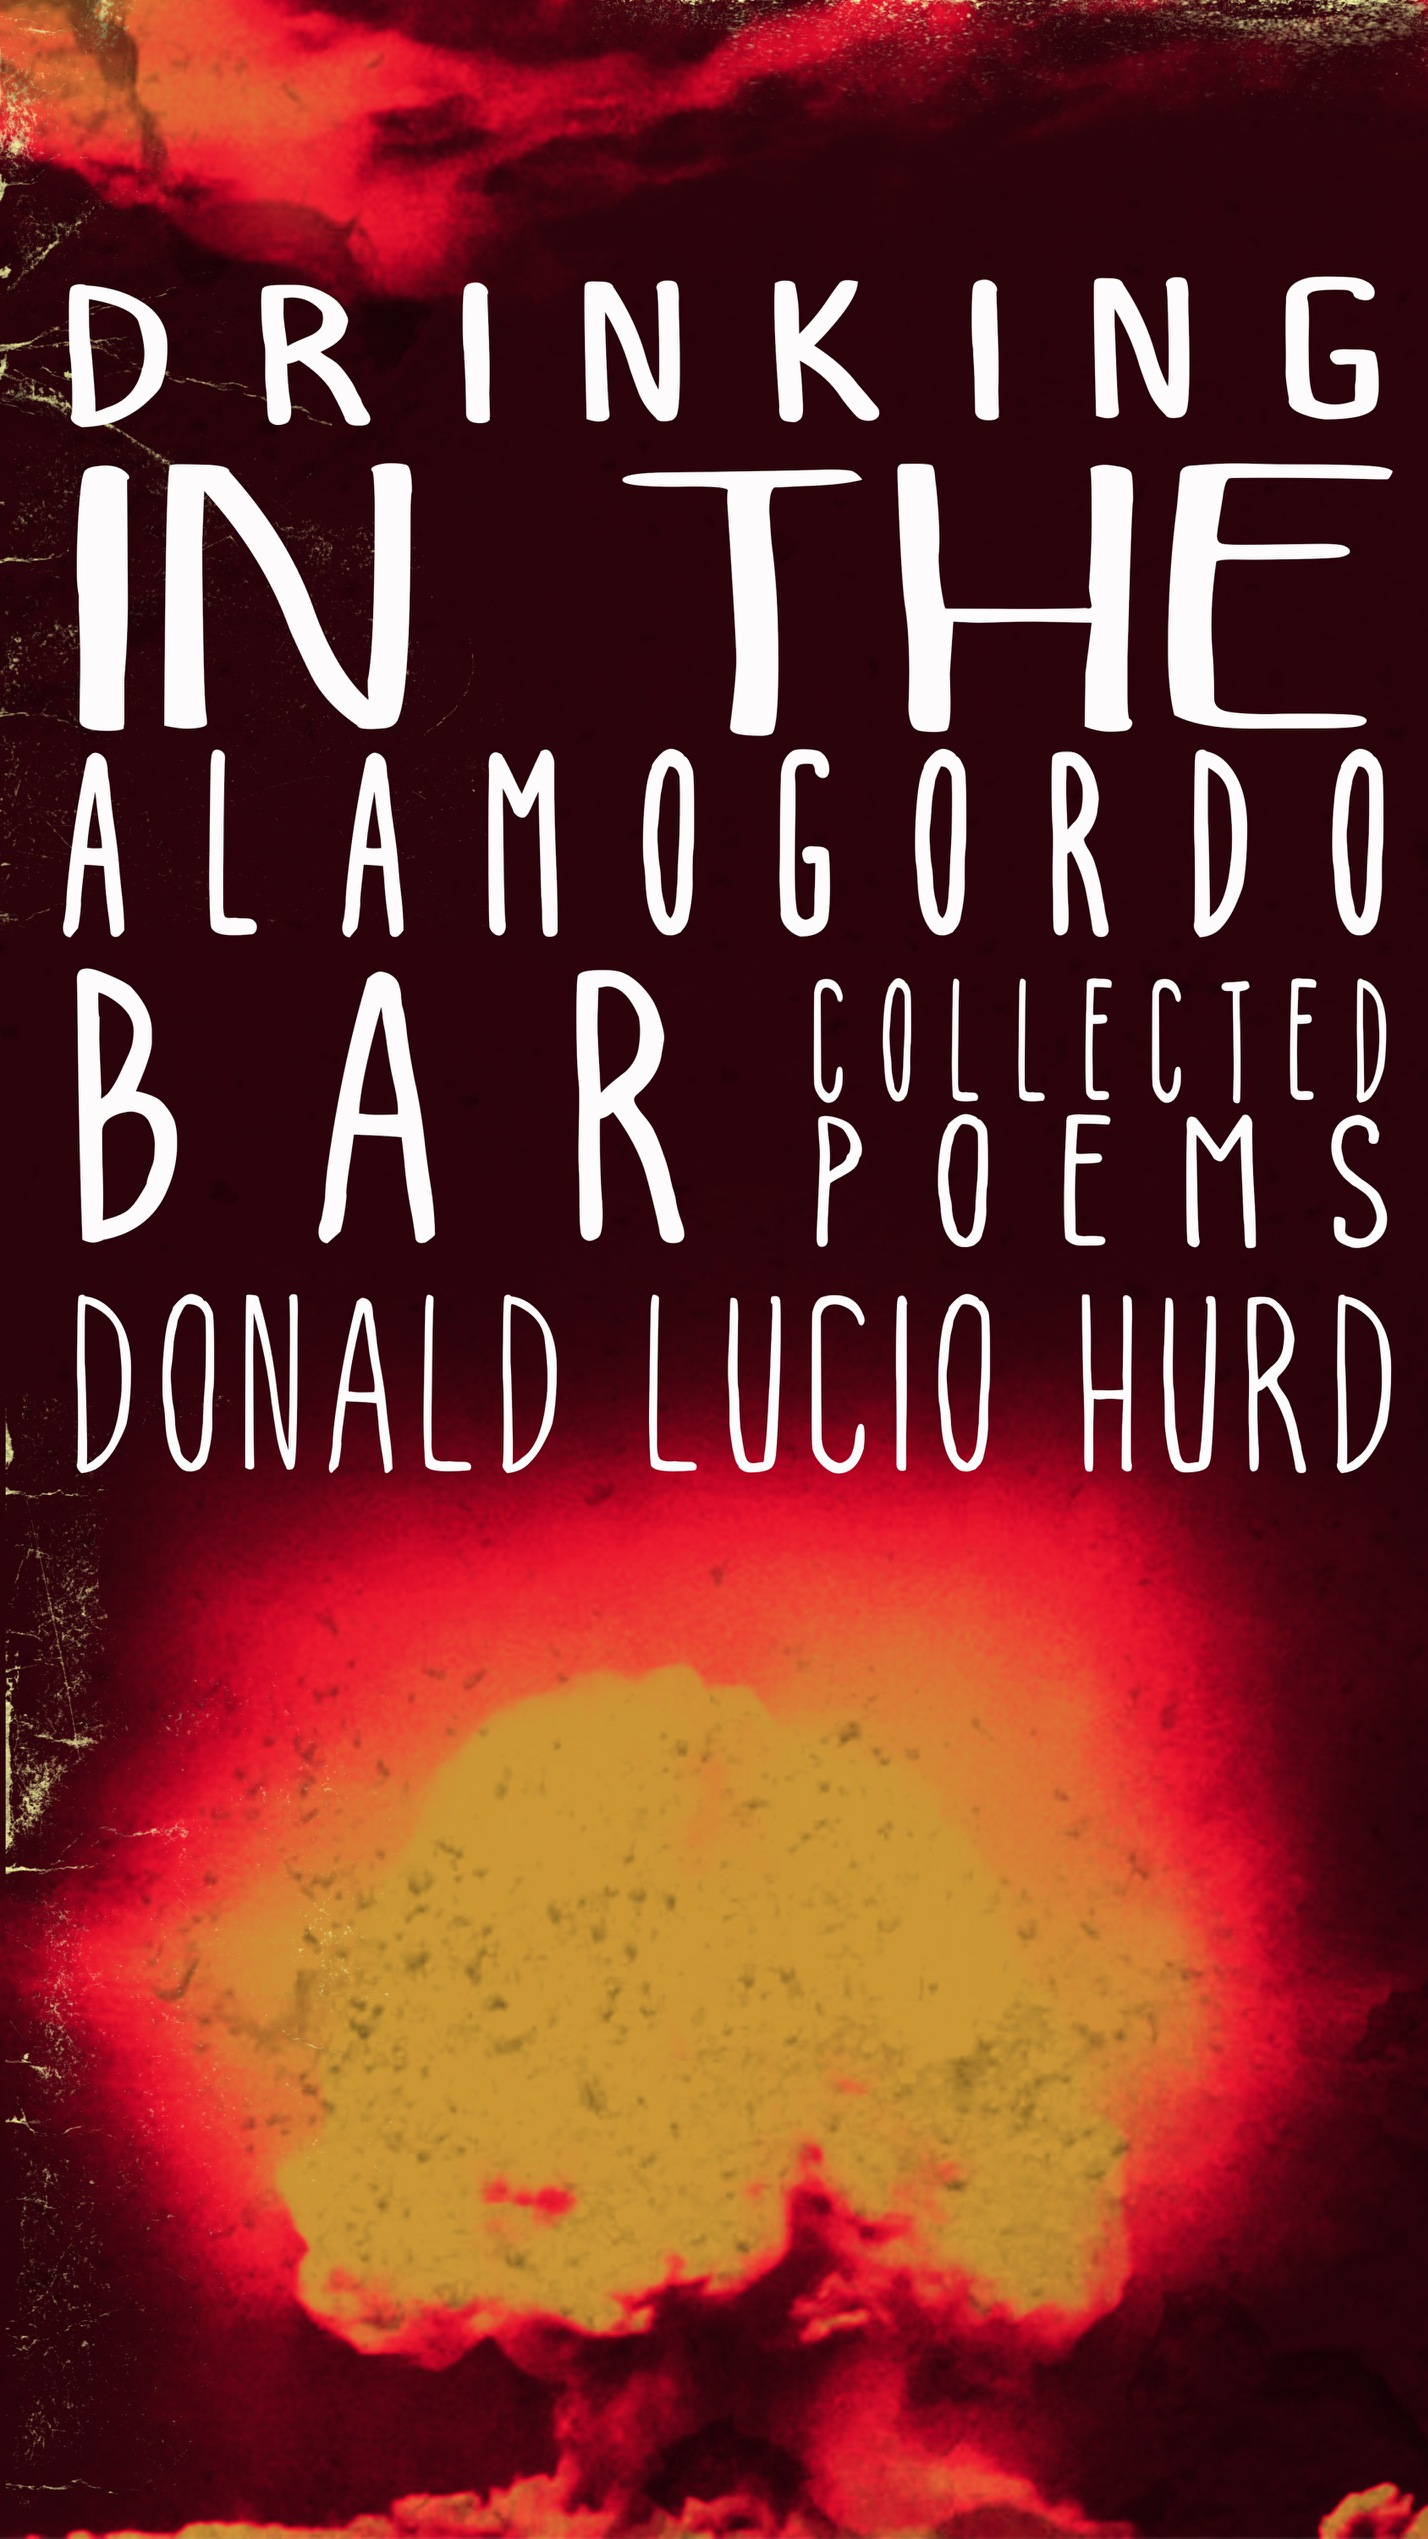 New from Alchemical Guild - Limited time only, hard-cover edition of Don Hurd's collected poems.